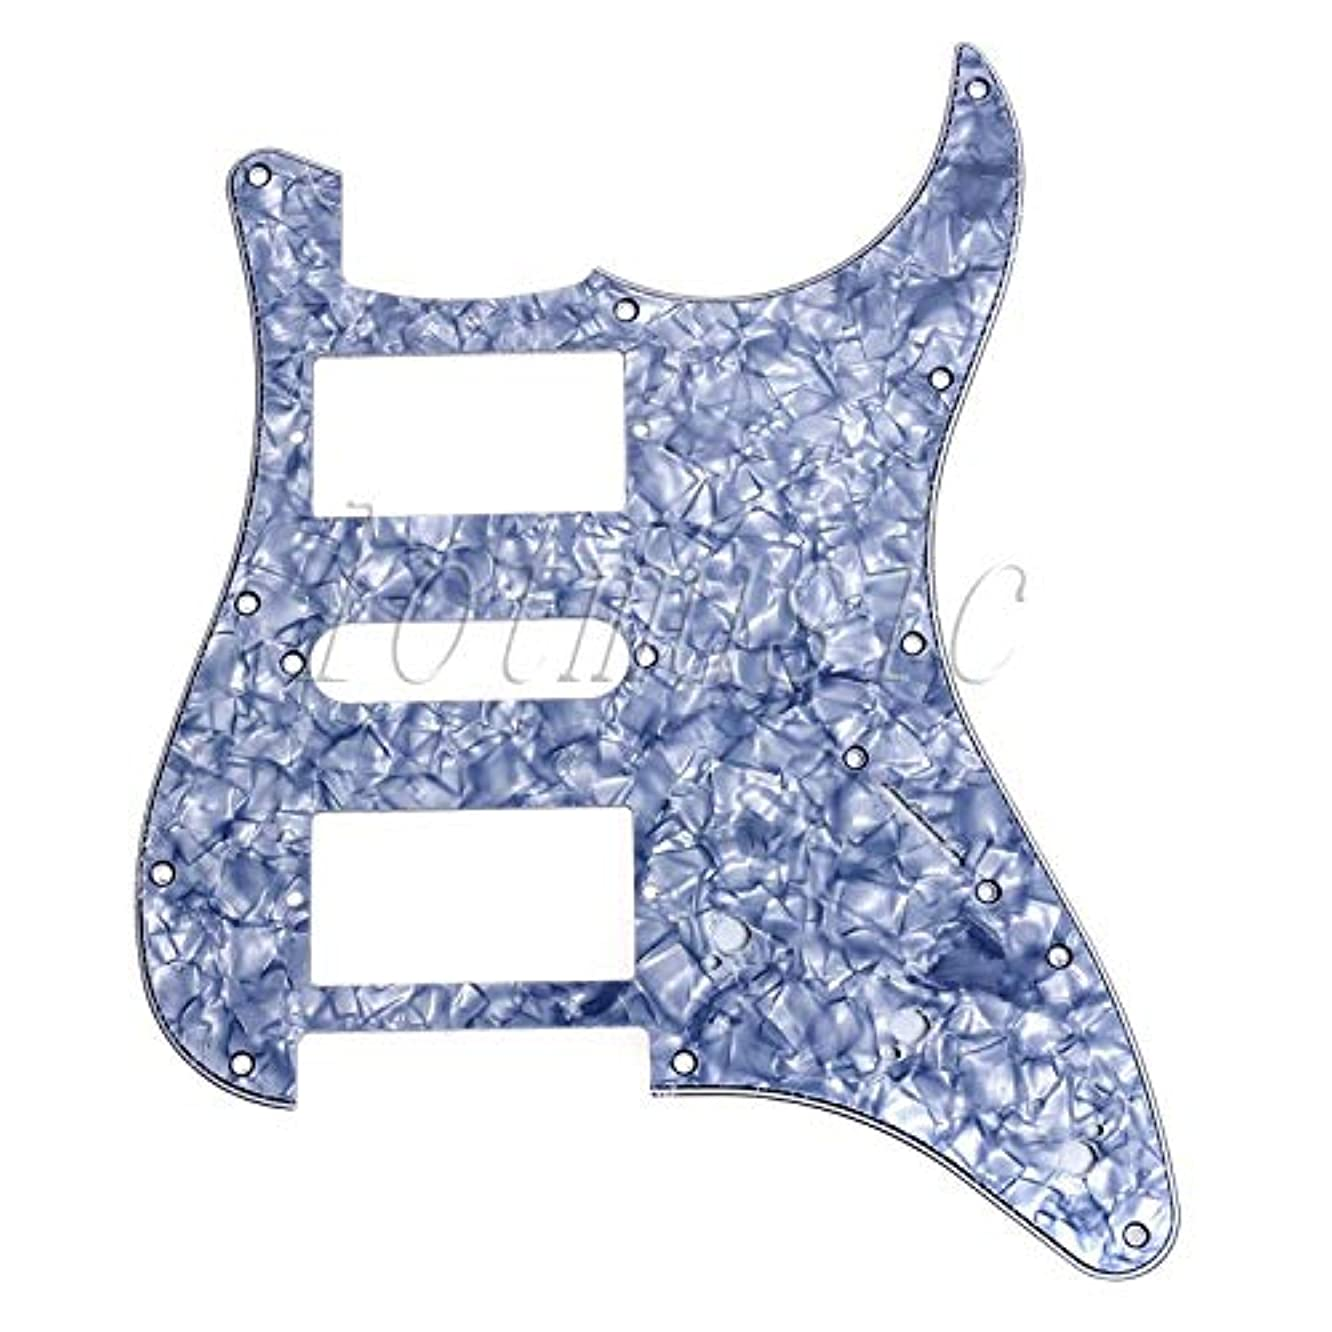 Electric Guitar Pickguard Scratch Plate For ST Guitar Parts Replacement Material HSH 3 Ply Pearl White Black